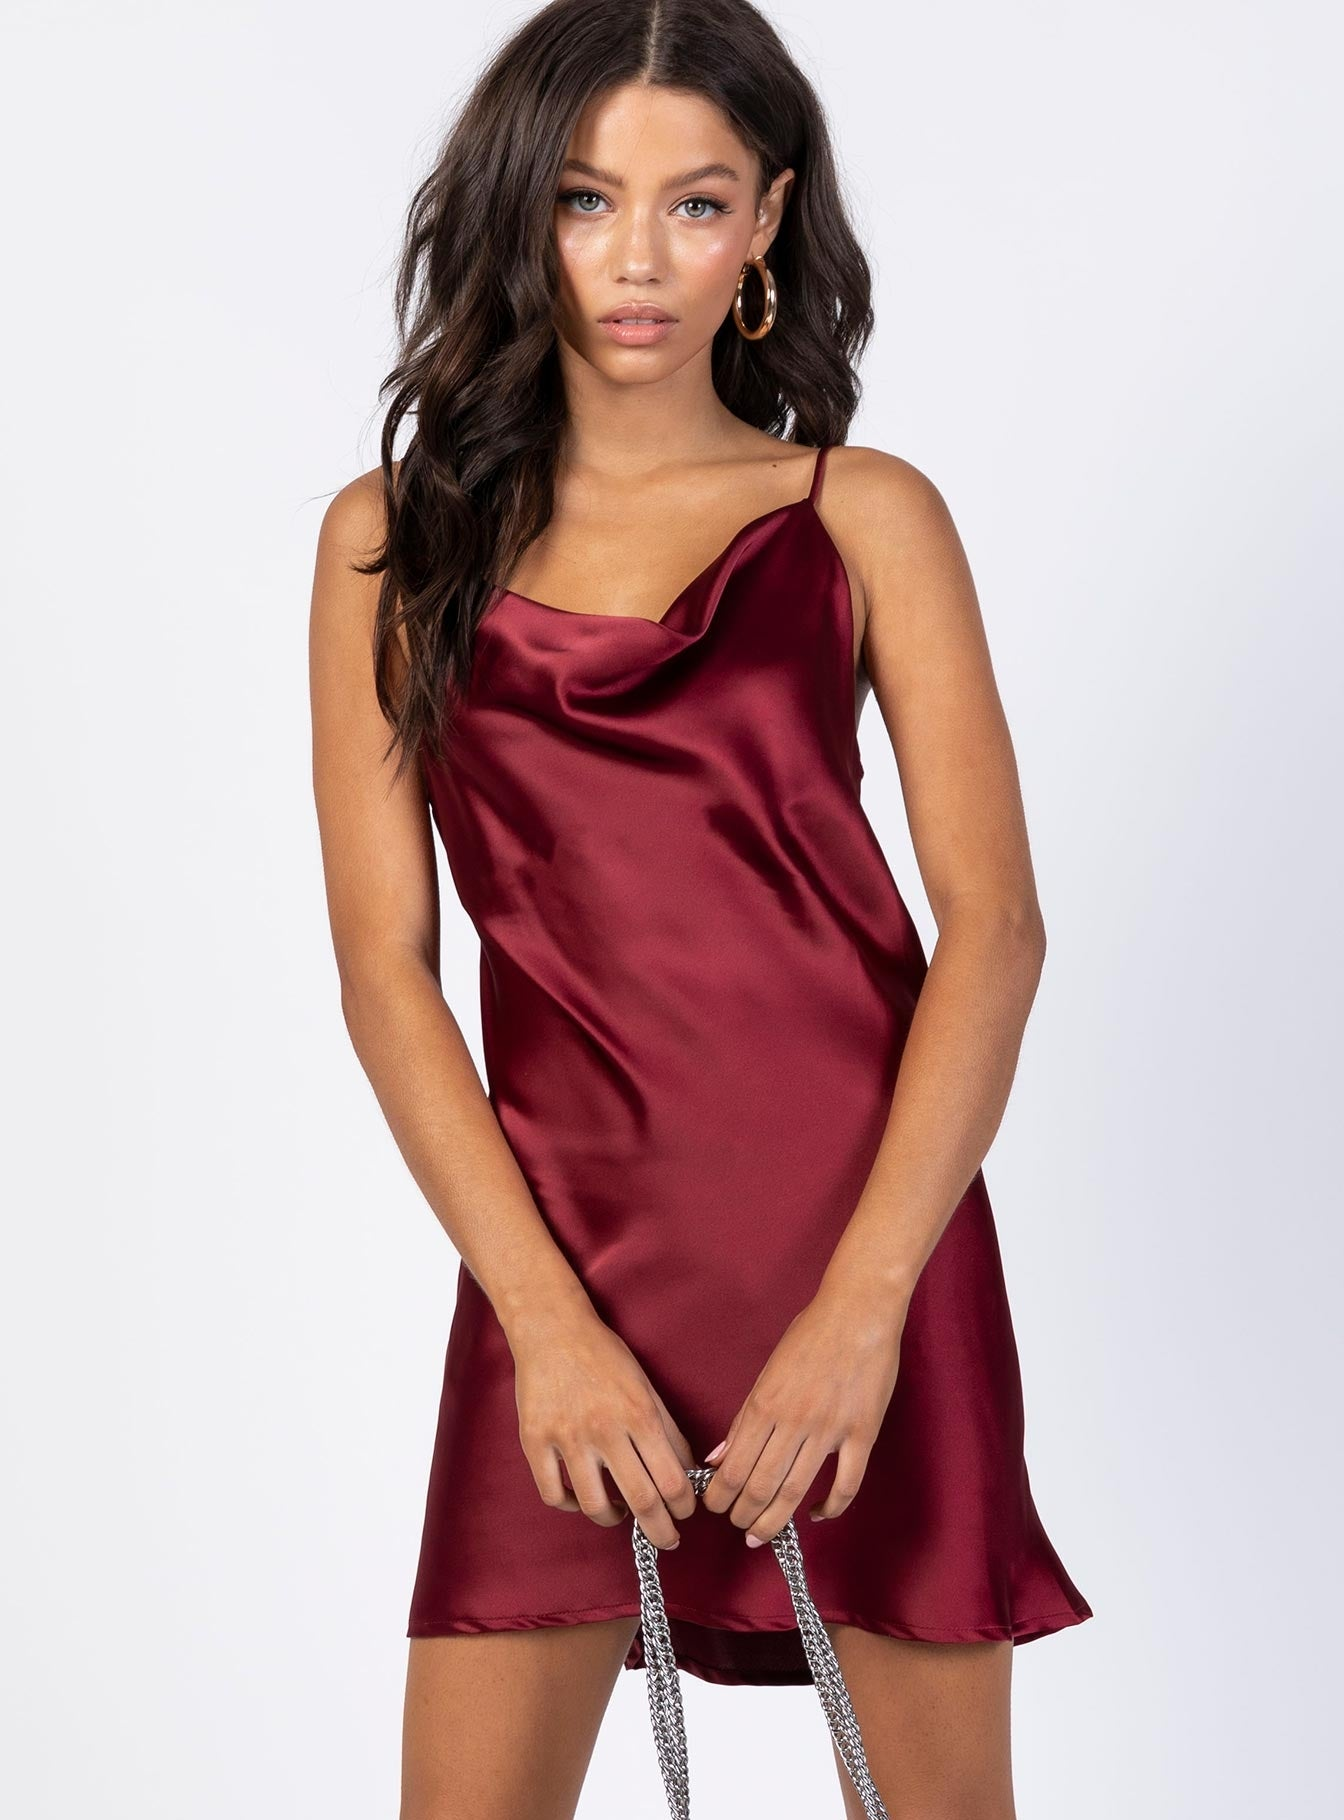 Betta Vanore Mini Dress Burgundy